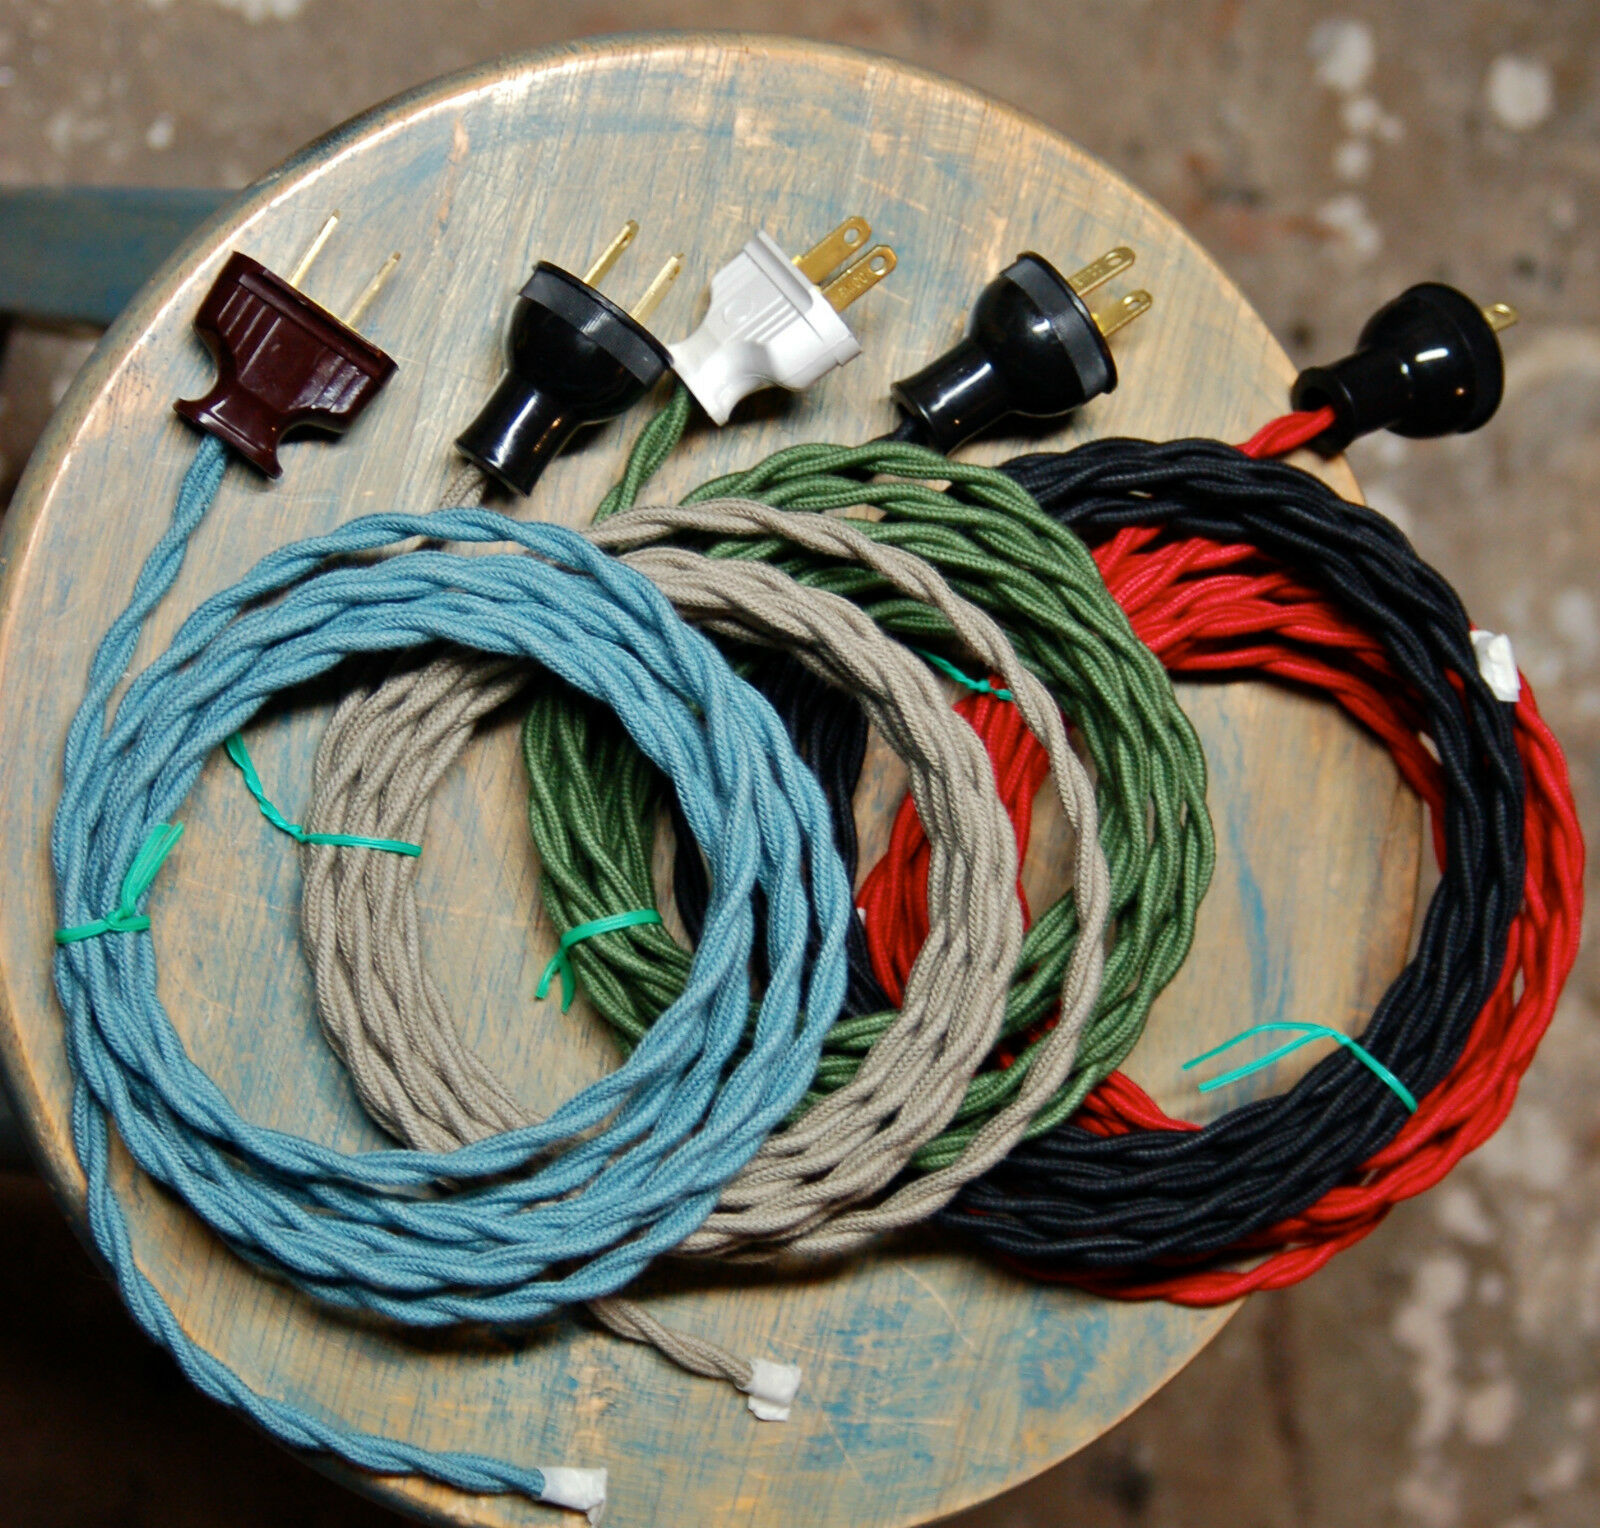 8 Twisted Cloth Covered Wire Plug Vintage Light Rewire Kit Lamp How To An Extension Cord 1 Of 12free Shipping